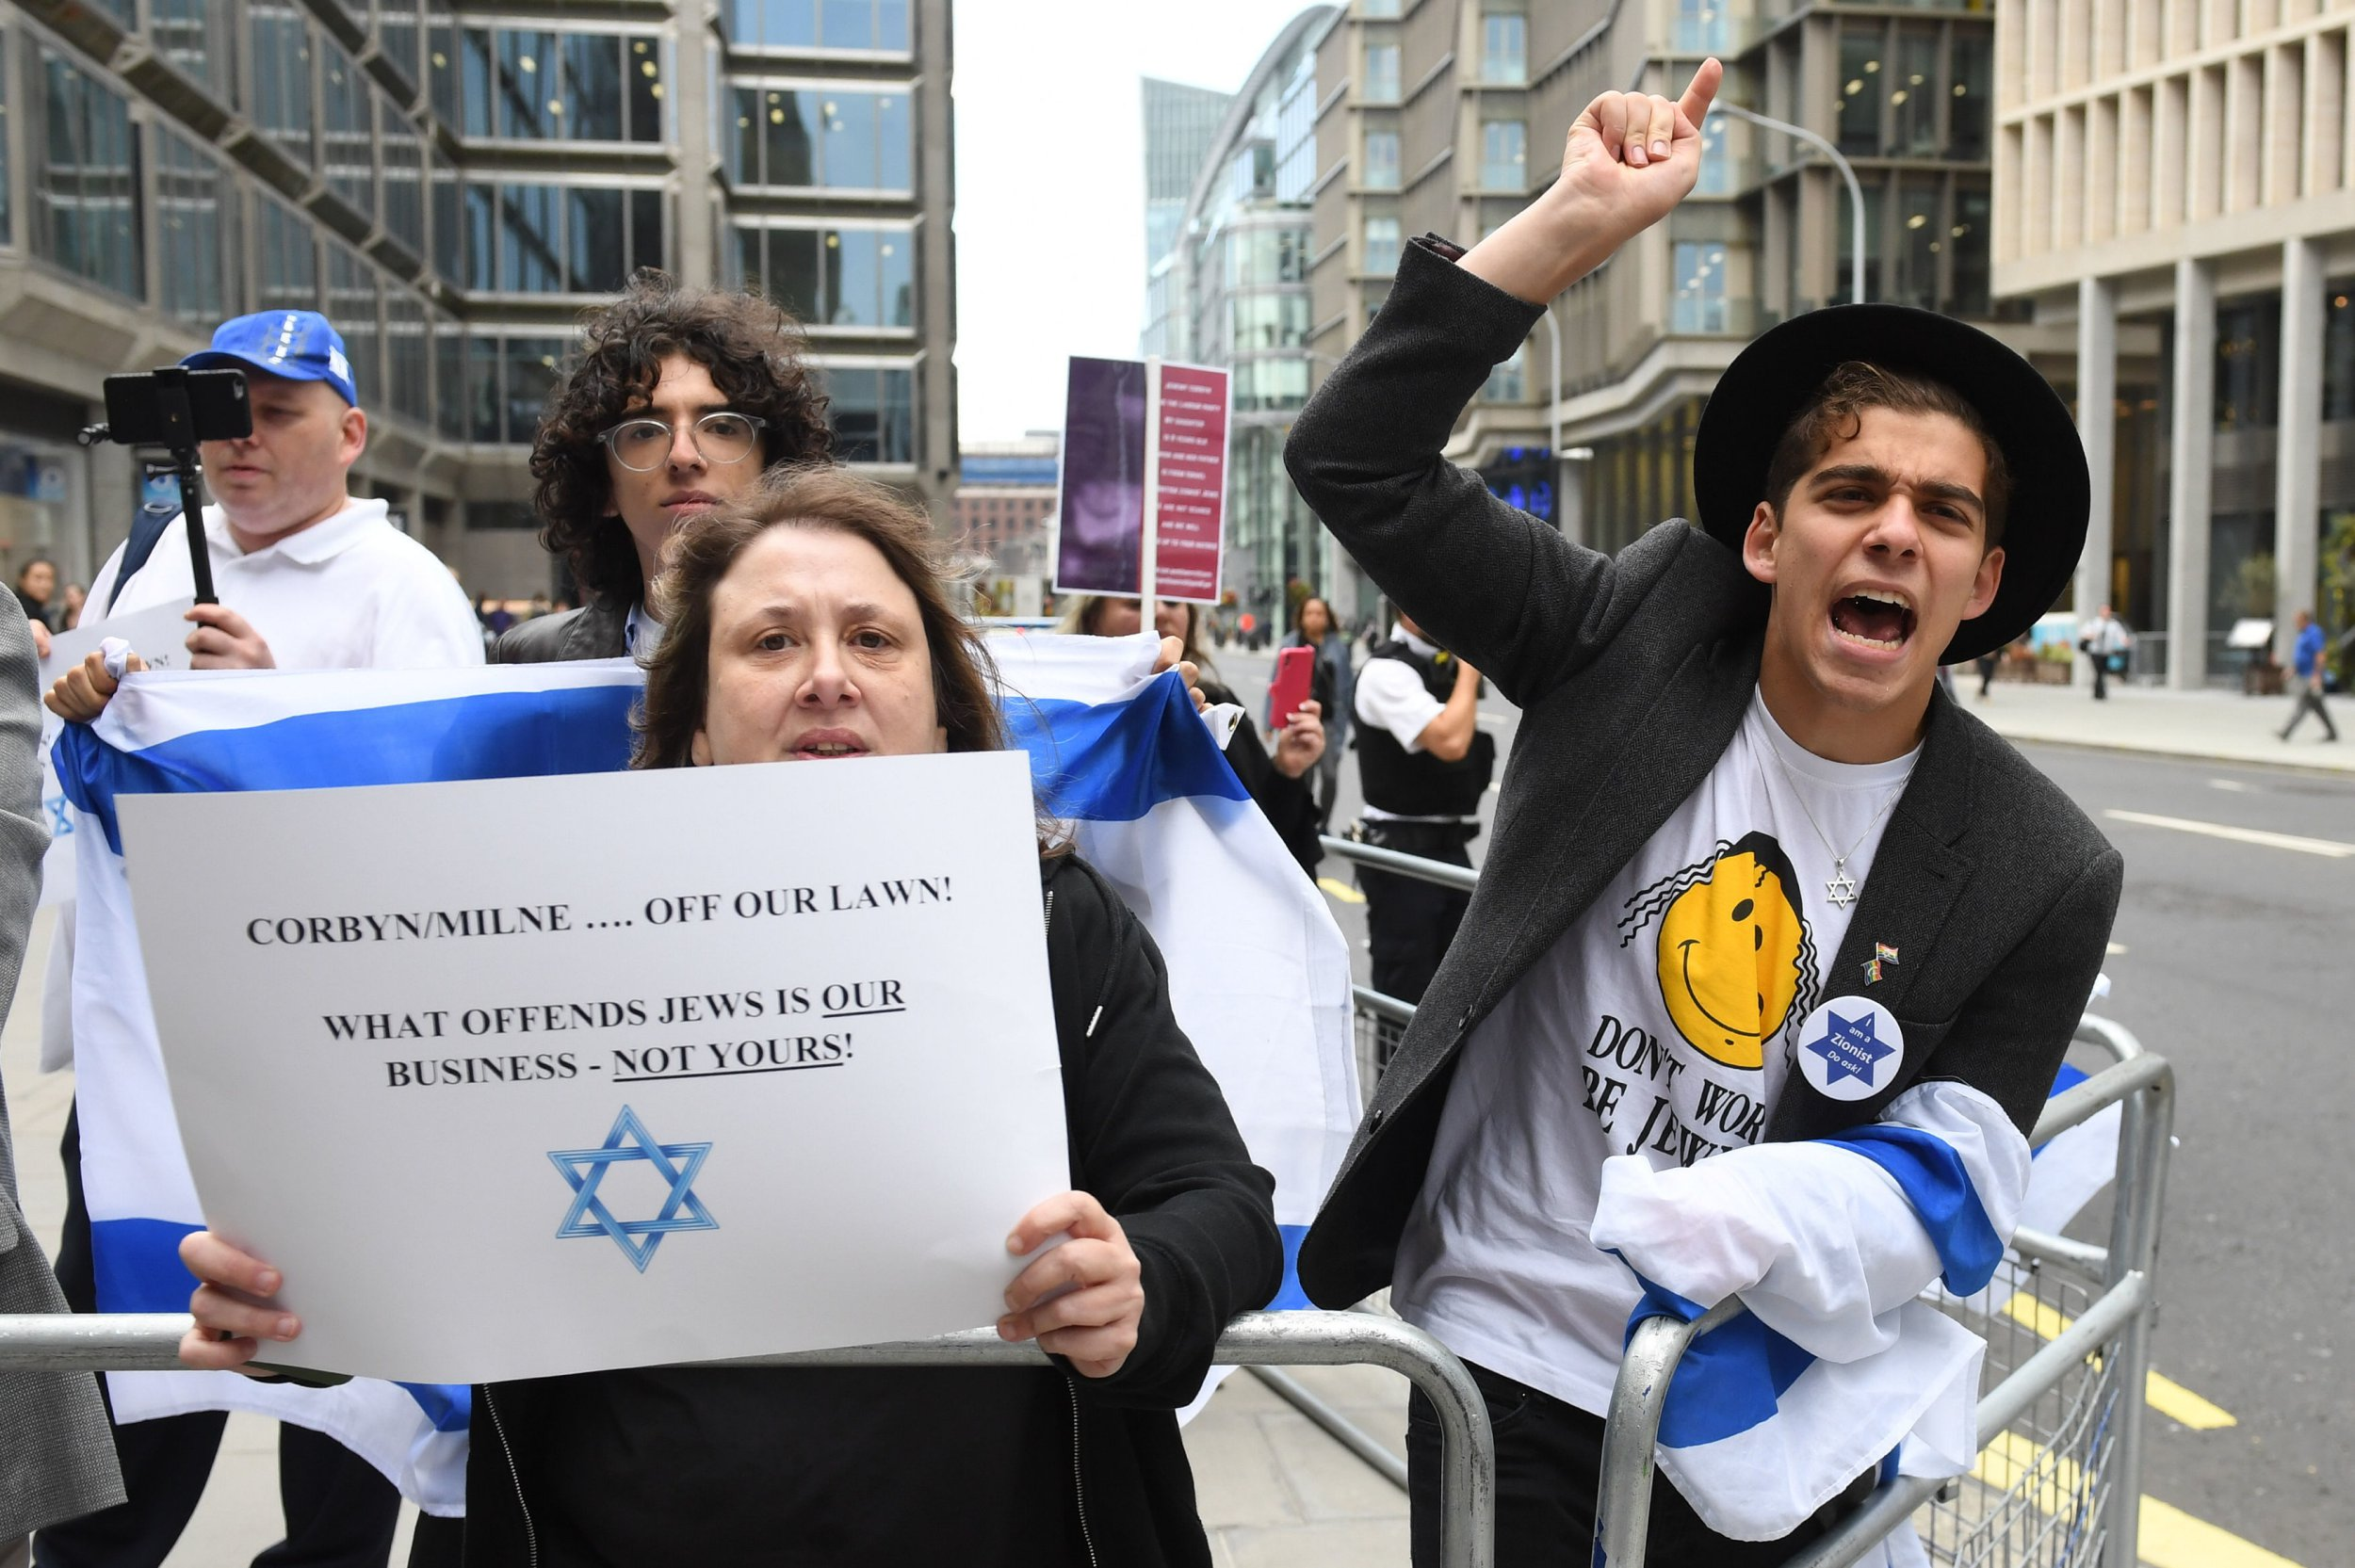 Activists outside a meeting of the Labour National Executive Committee in London which is expected to decide on whether to adopt the International Holocaust Remembrance Alliance (IHRA) definition of anti-Semitism and its examples, which has been the subject of a bitter row within the party over recent months. PRESS ASSOCIATION Photo. Picture date: Tuesday September 4, 2018. See PA story POLITICS Labour. Photo credit should read: Stefan Rousseau/PA Wire